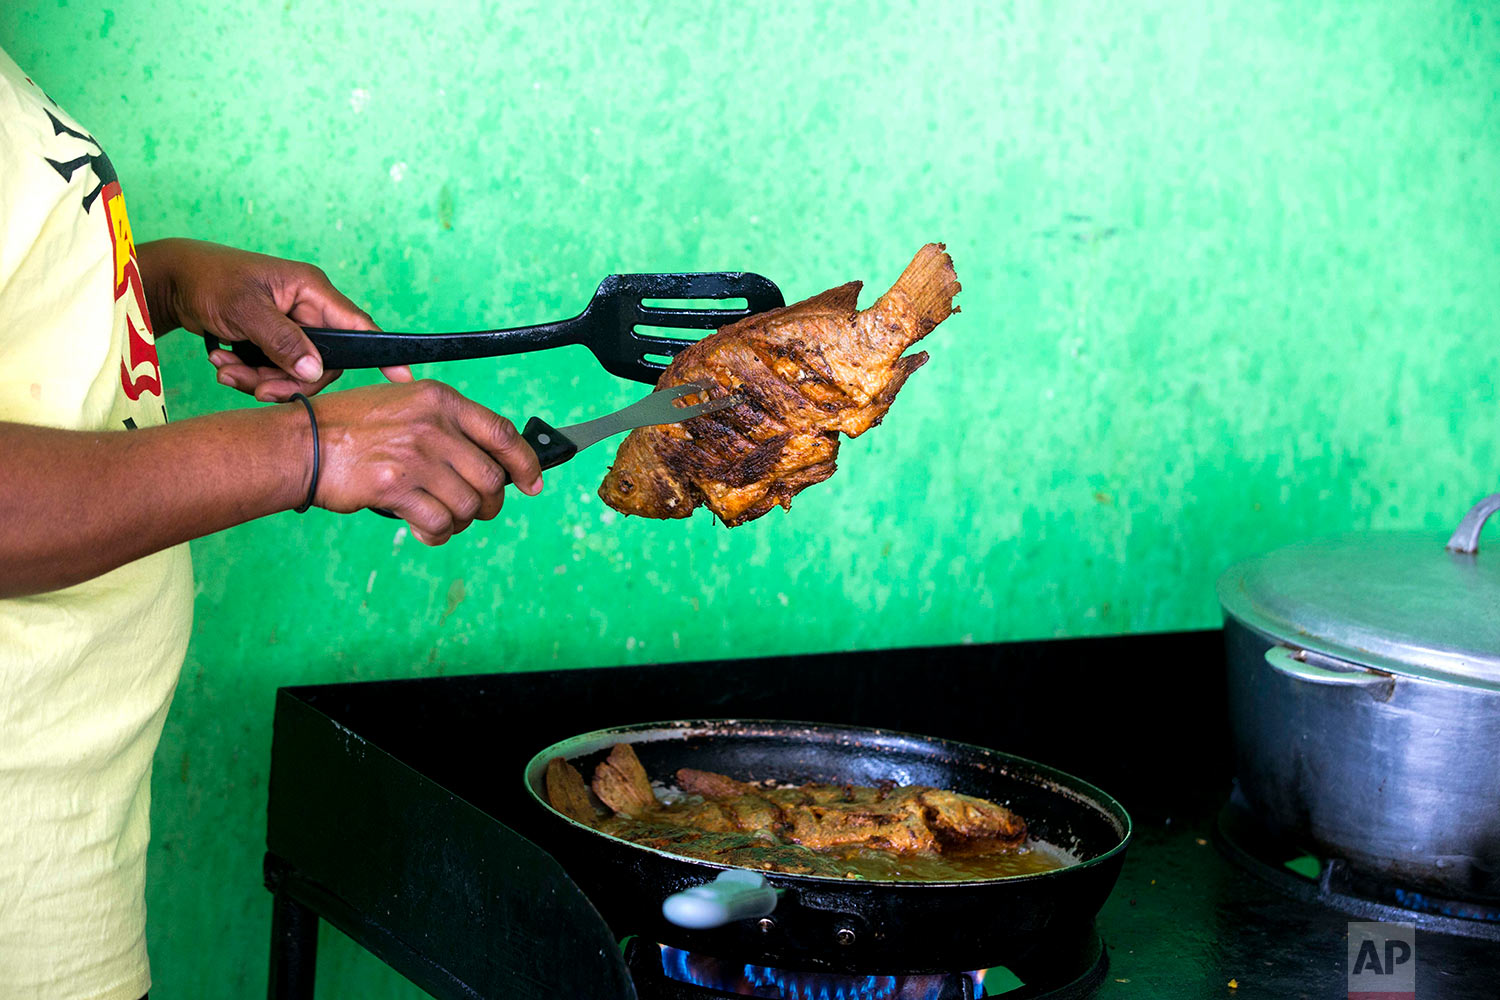 In this April 26, 2018 photo, Marjorie Dorcena cooks tilapia from Taino Aqua Fish farm for a guest staying at a small hotel known as a guest house in Fond Parisien, Haiti. In a country where most people live on less than $2 a day, Taino tilapia costs about $3.50 a pound, which is $2 less than the more common pink fish. (AP Photo/Dieu Nalio Chery)